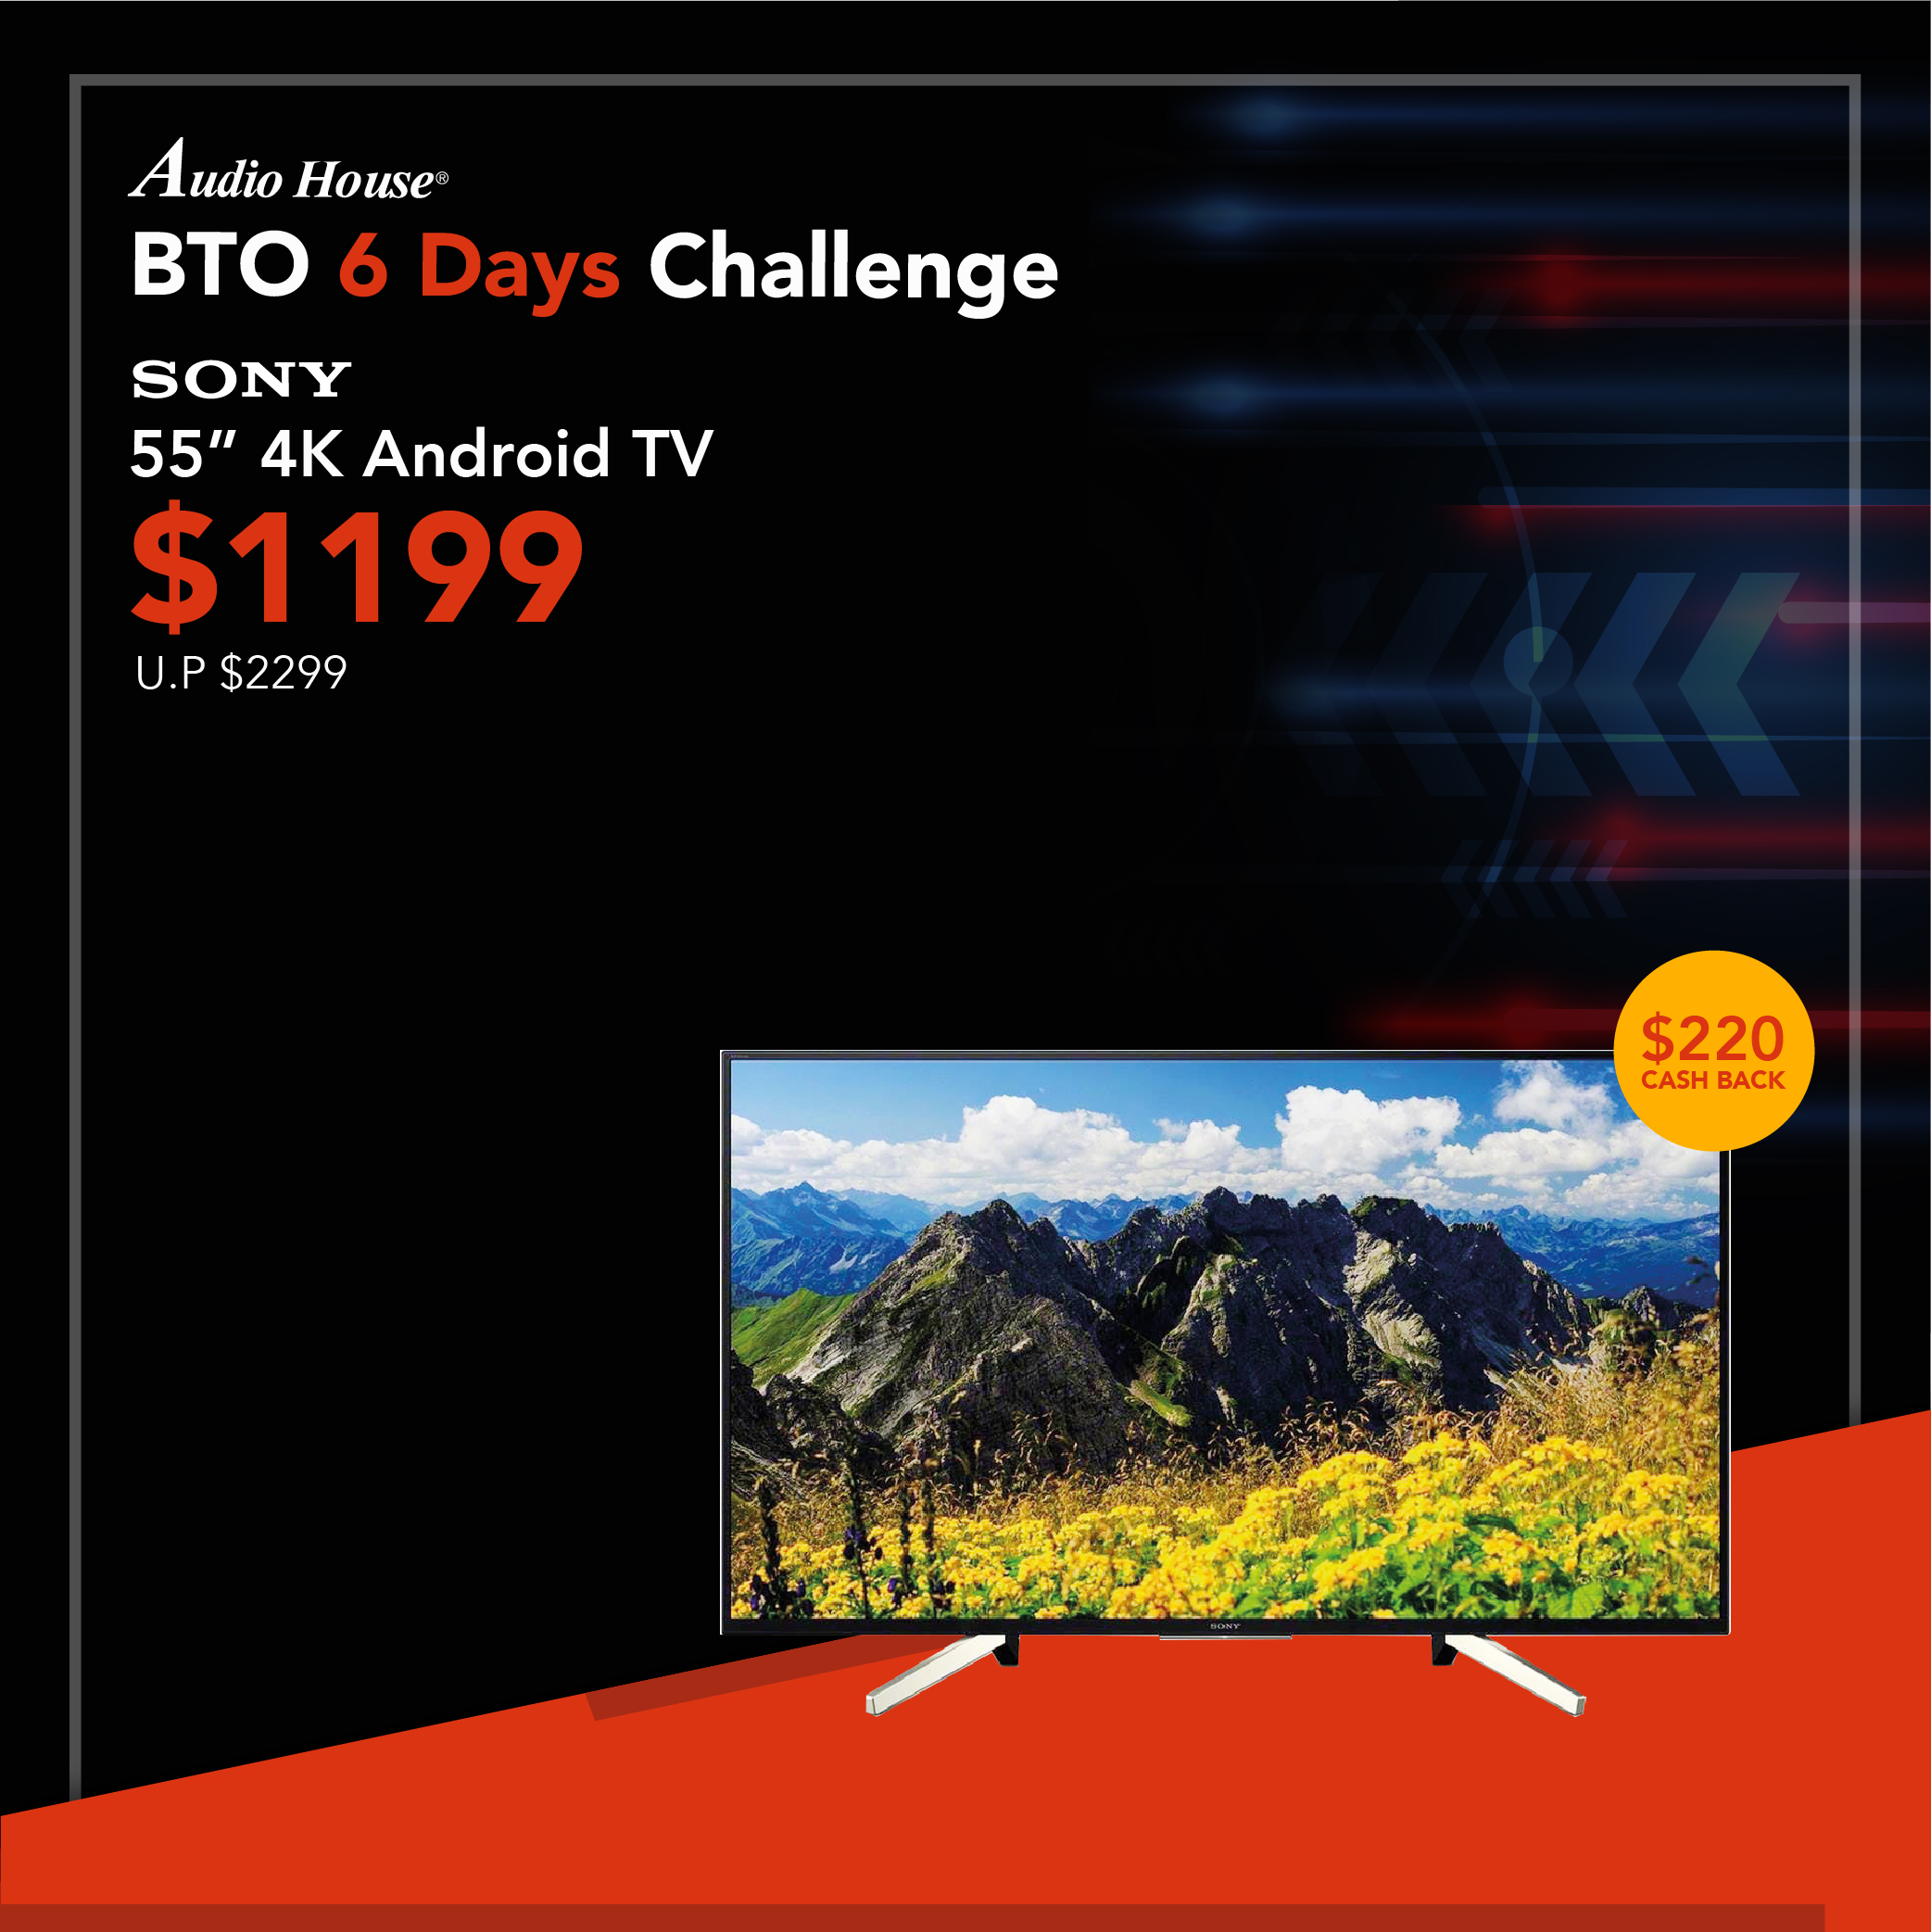 [BTO 6-Day Challenge] Lowest Prices Ever + Exclusive PWP Deals for Only $5! | Why Not Deals 4 & Promotions